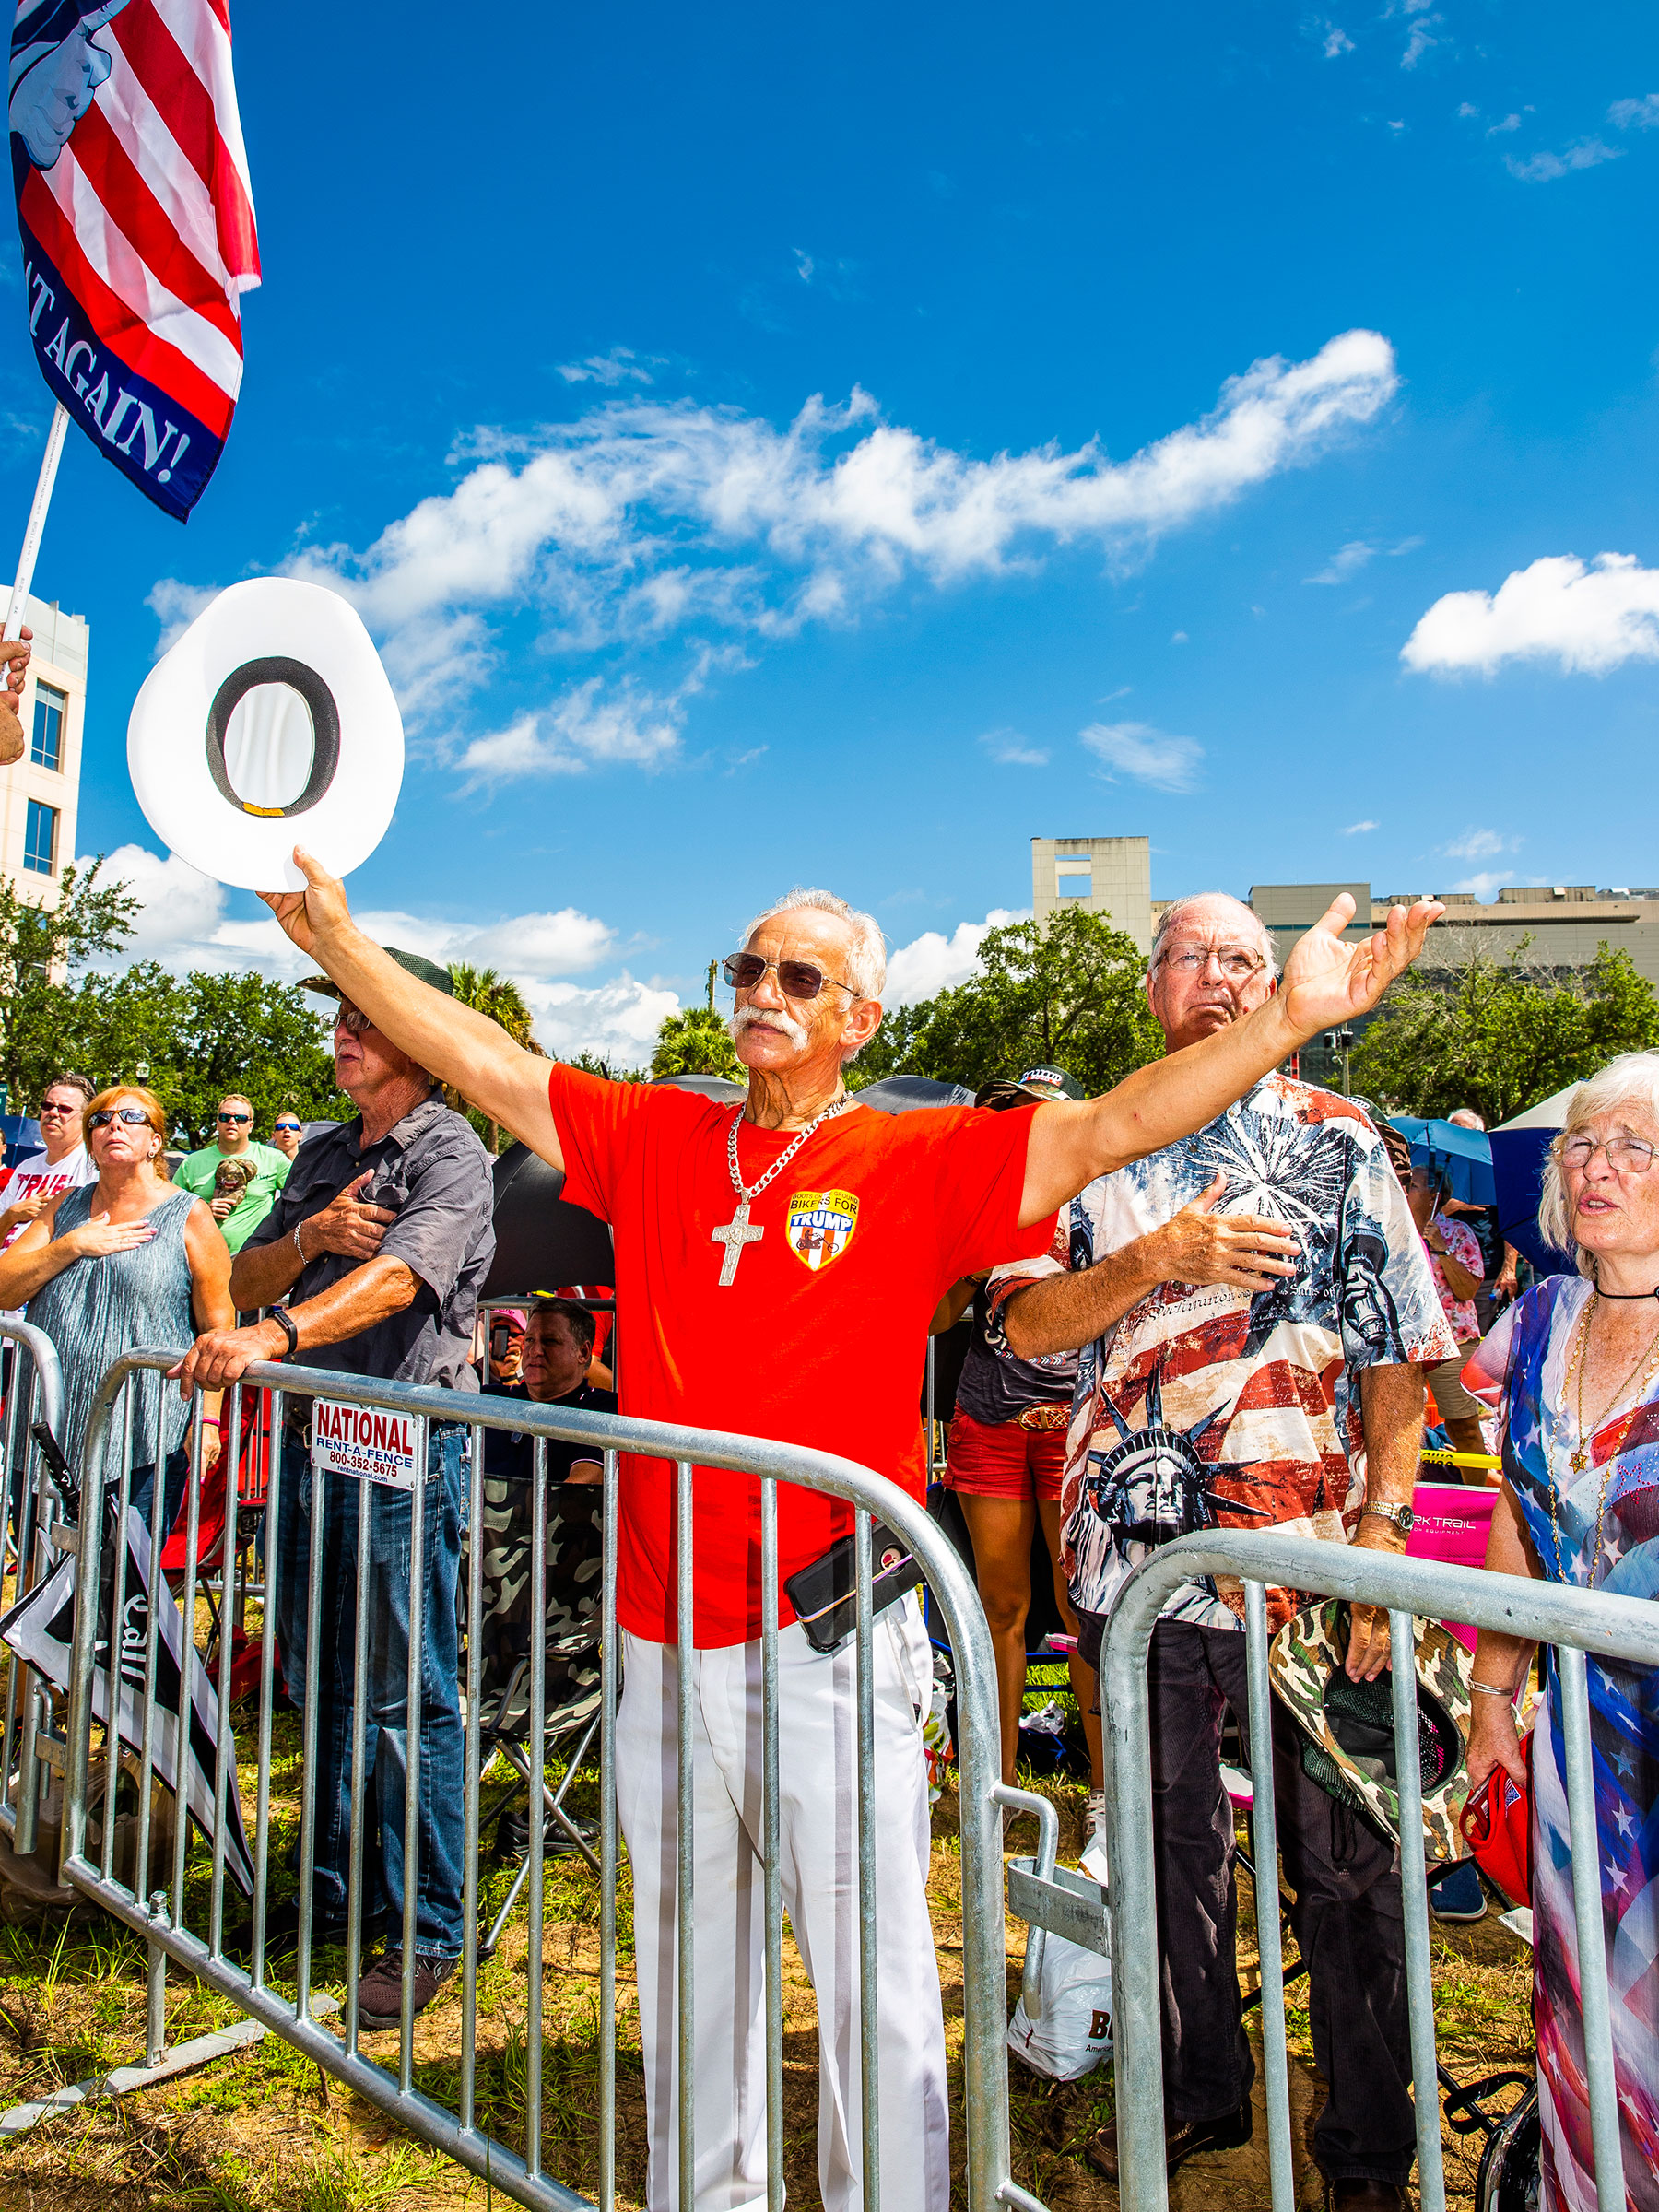 Attendees of Trump 2020 rally Orlando, Florida